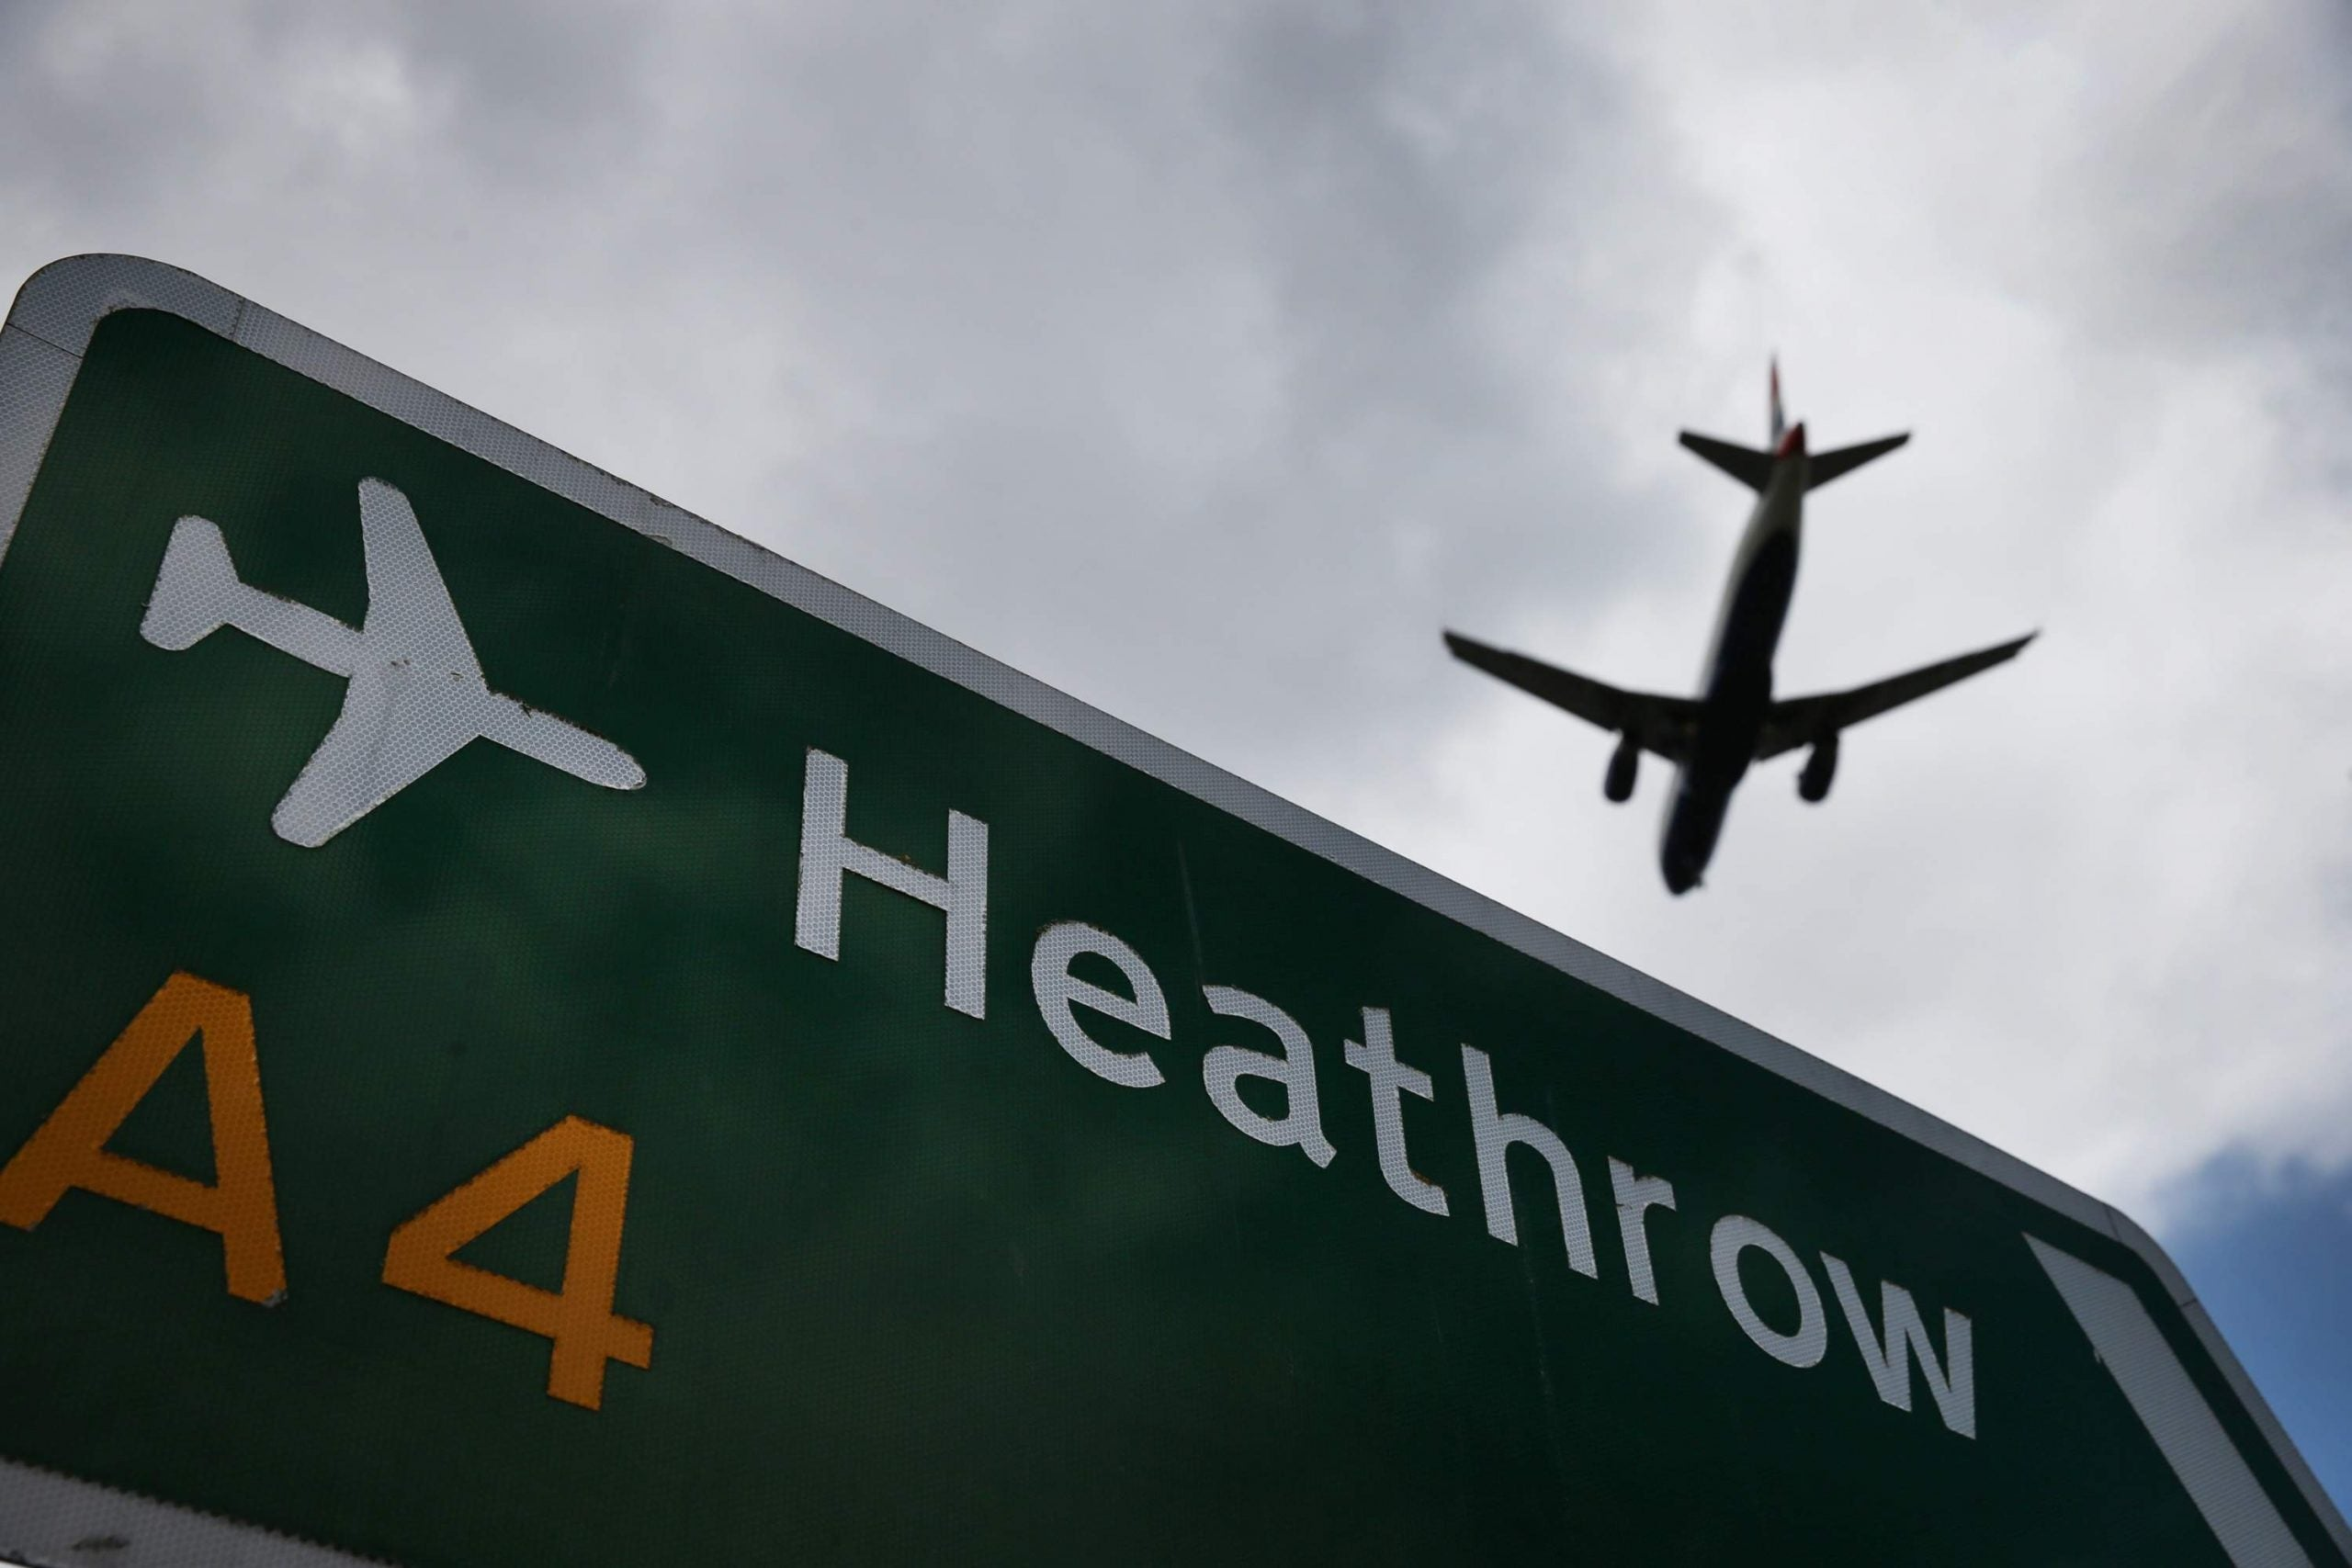 Business gains; economic growth and high quality jobs – why the trade unions wrote to Labour MPs backing plans for a new Heathrow runway